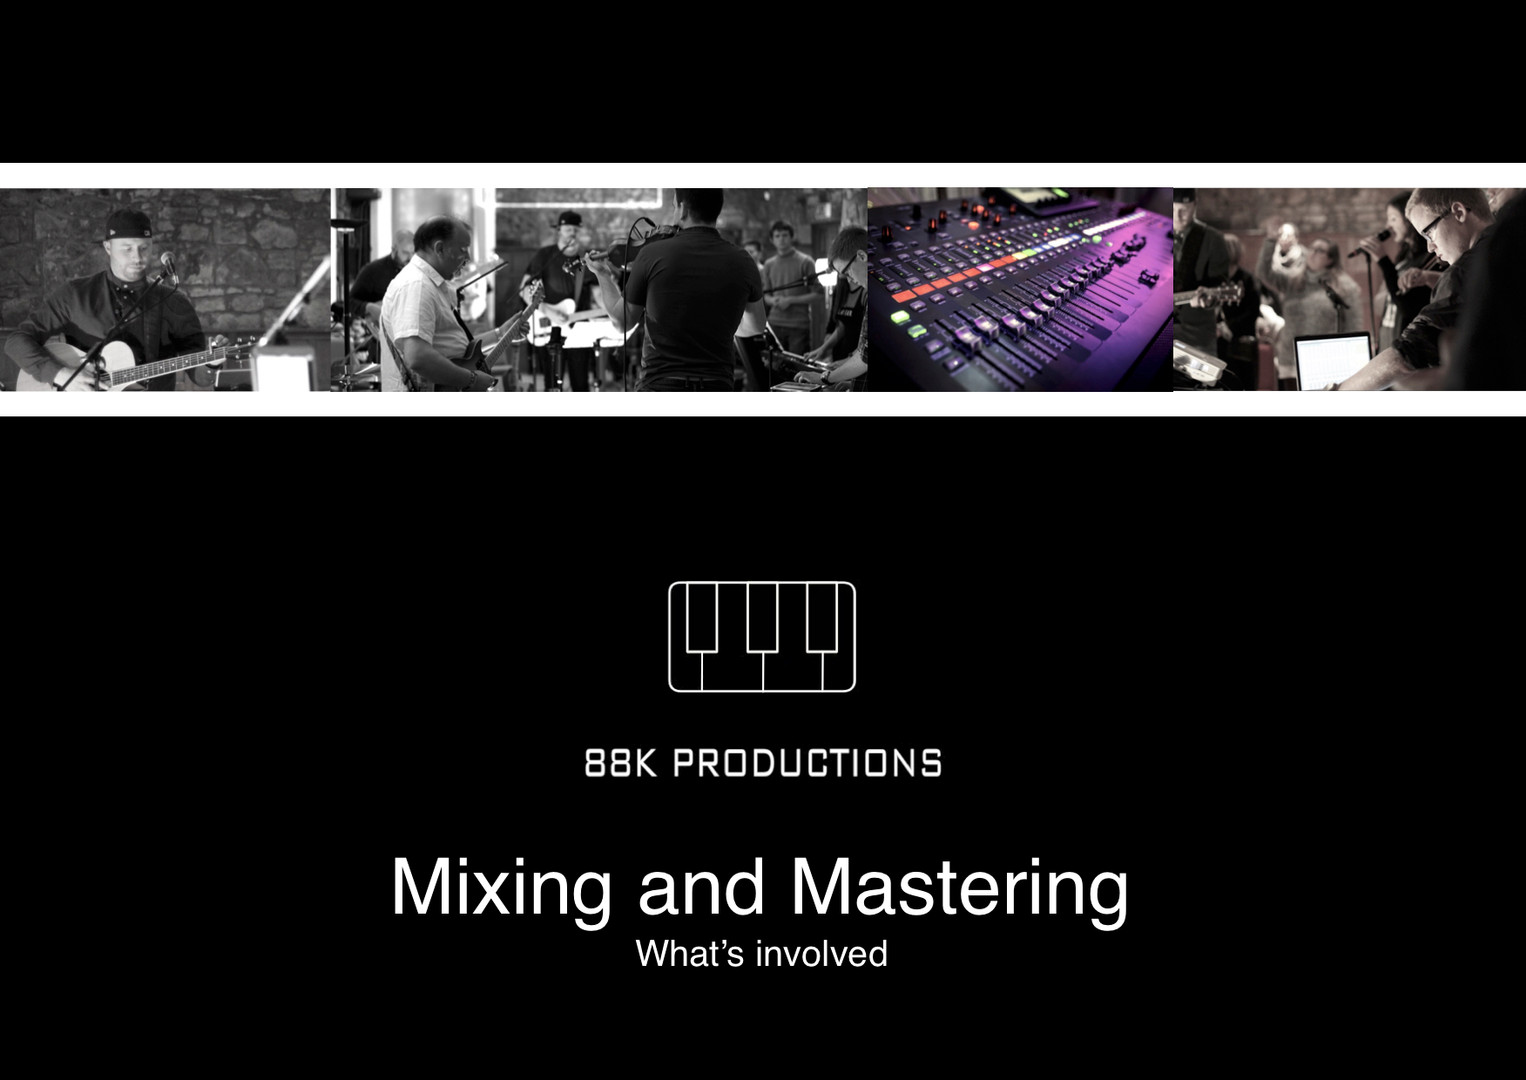 88K Productions Mizing Mastering Explain